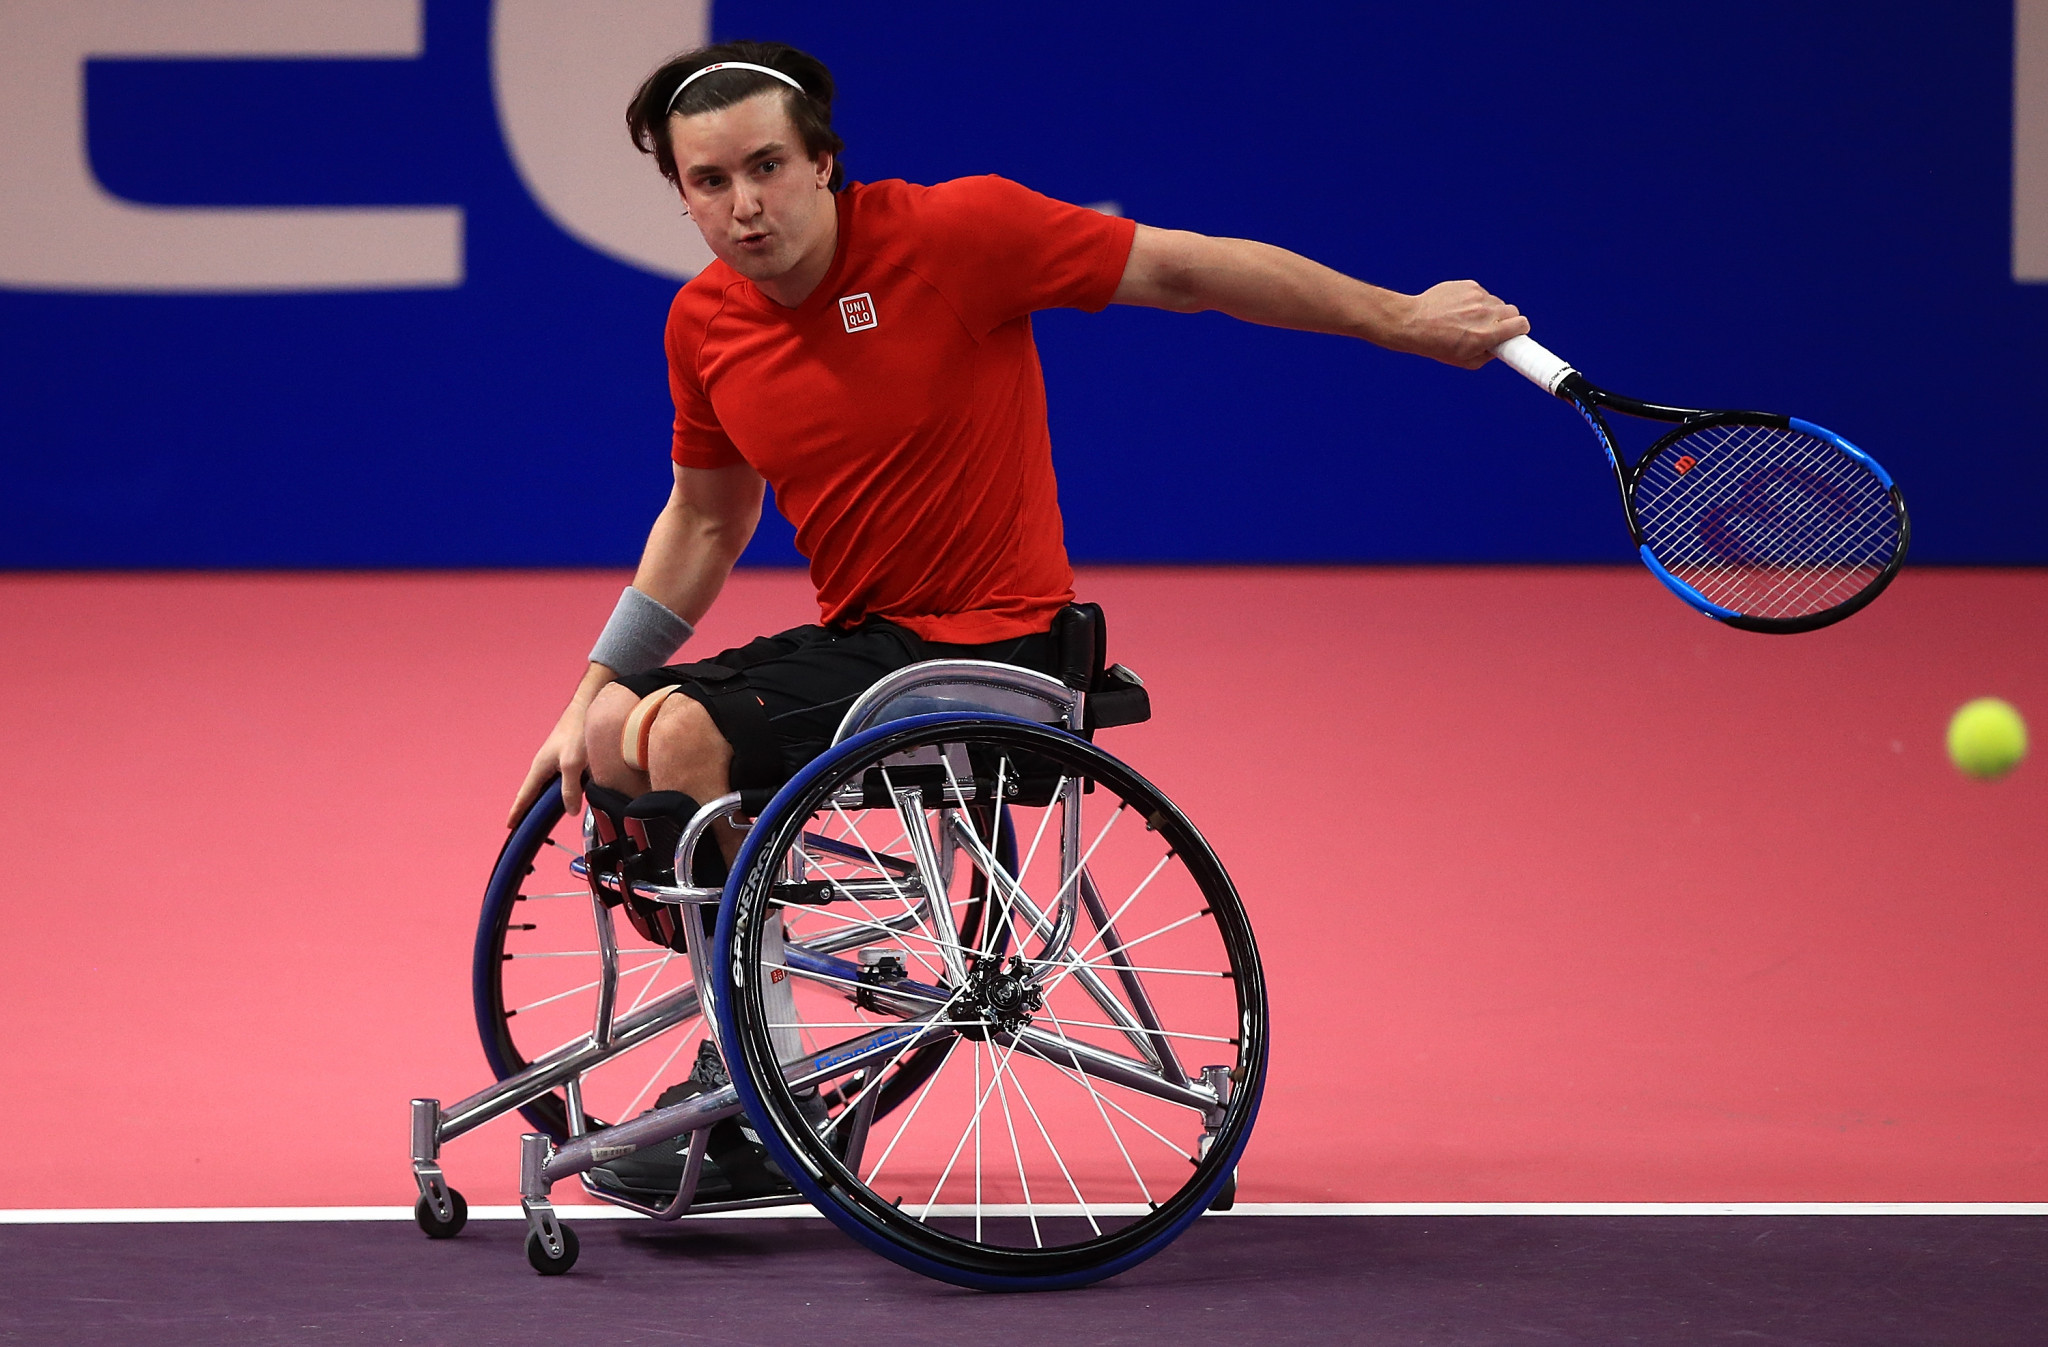 Great Britain's Gordon Reid partners Argentina's Gustavo Fernandez in the Wheelchair Doubles Masters to victory over Dutch pair Tom Egberink and Maikel Scheffers ©Getty Images